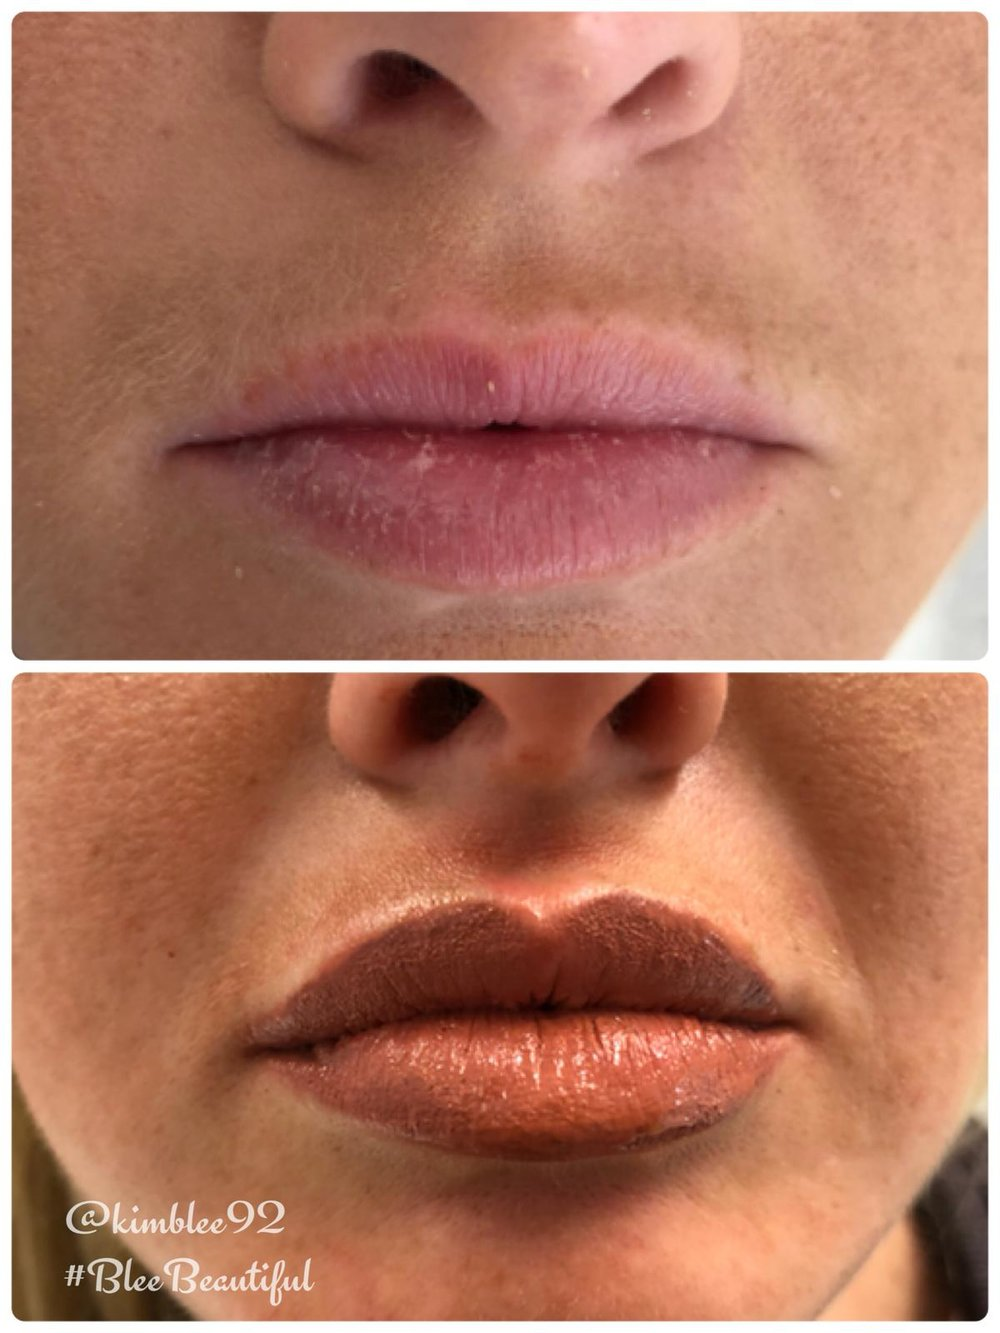 Venus-Beauty-Hair-Salon-Devon-Tavistock-Kim-Pope-Microblading-Semi-Permanent-Make-Up-Lip-Liner-Blush.JPG